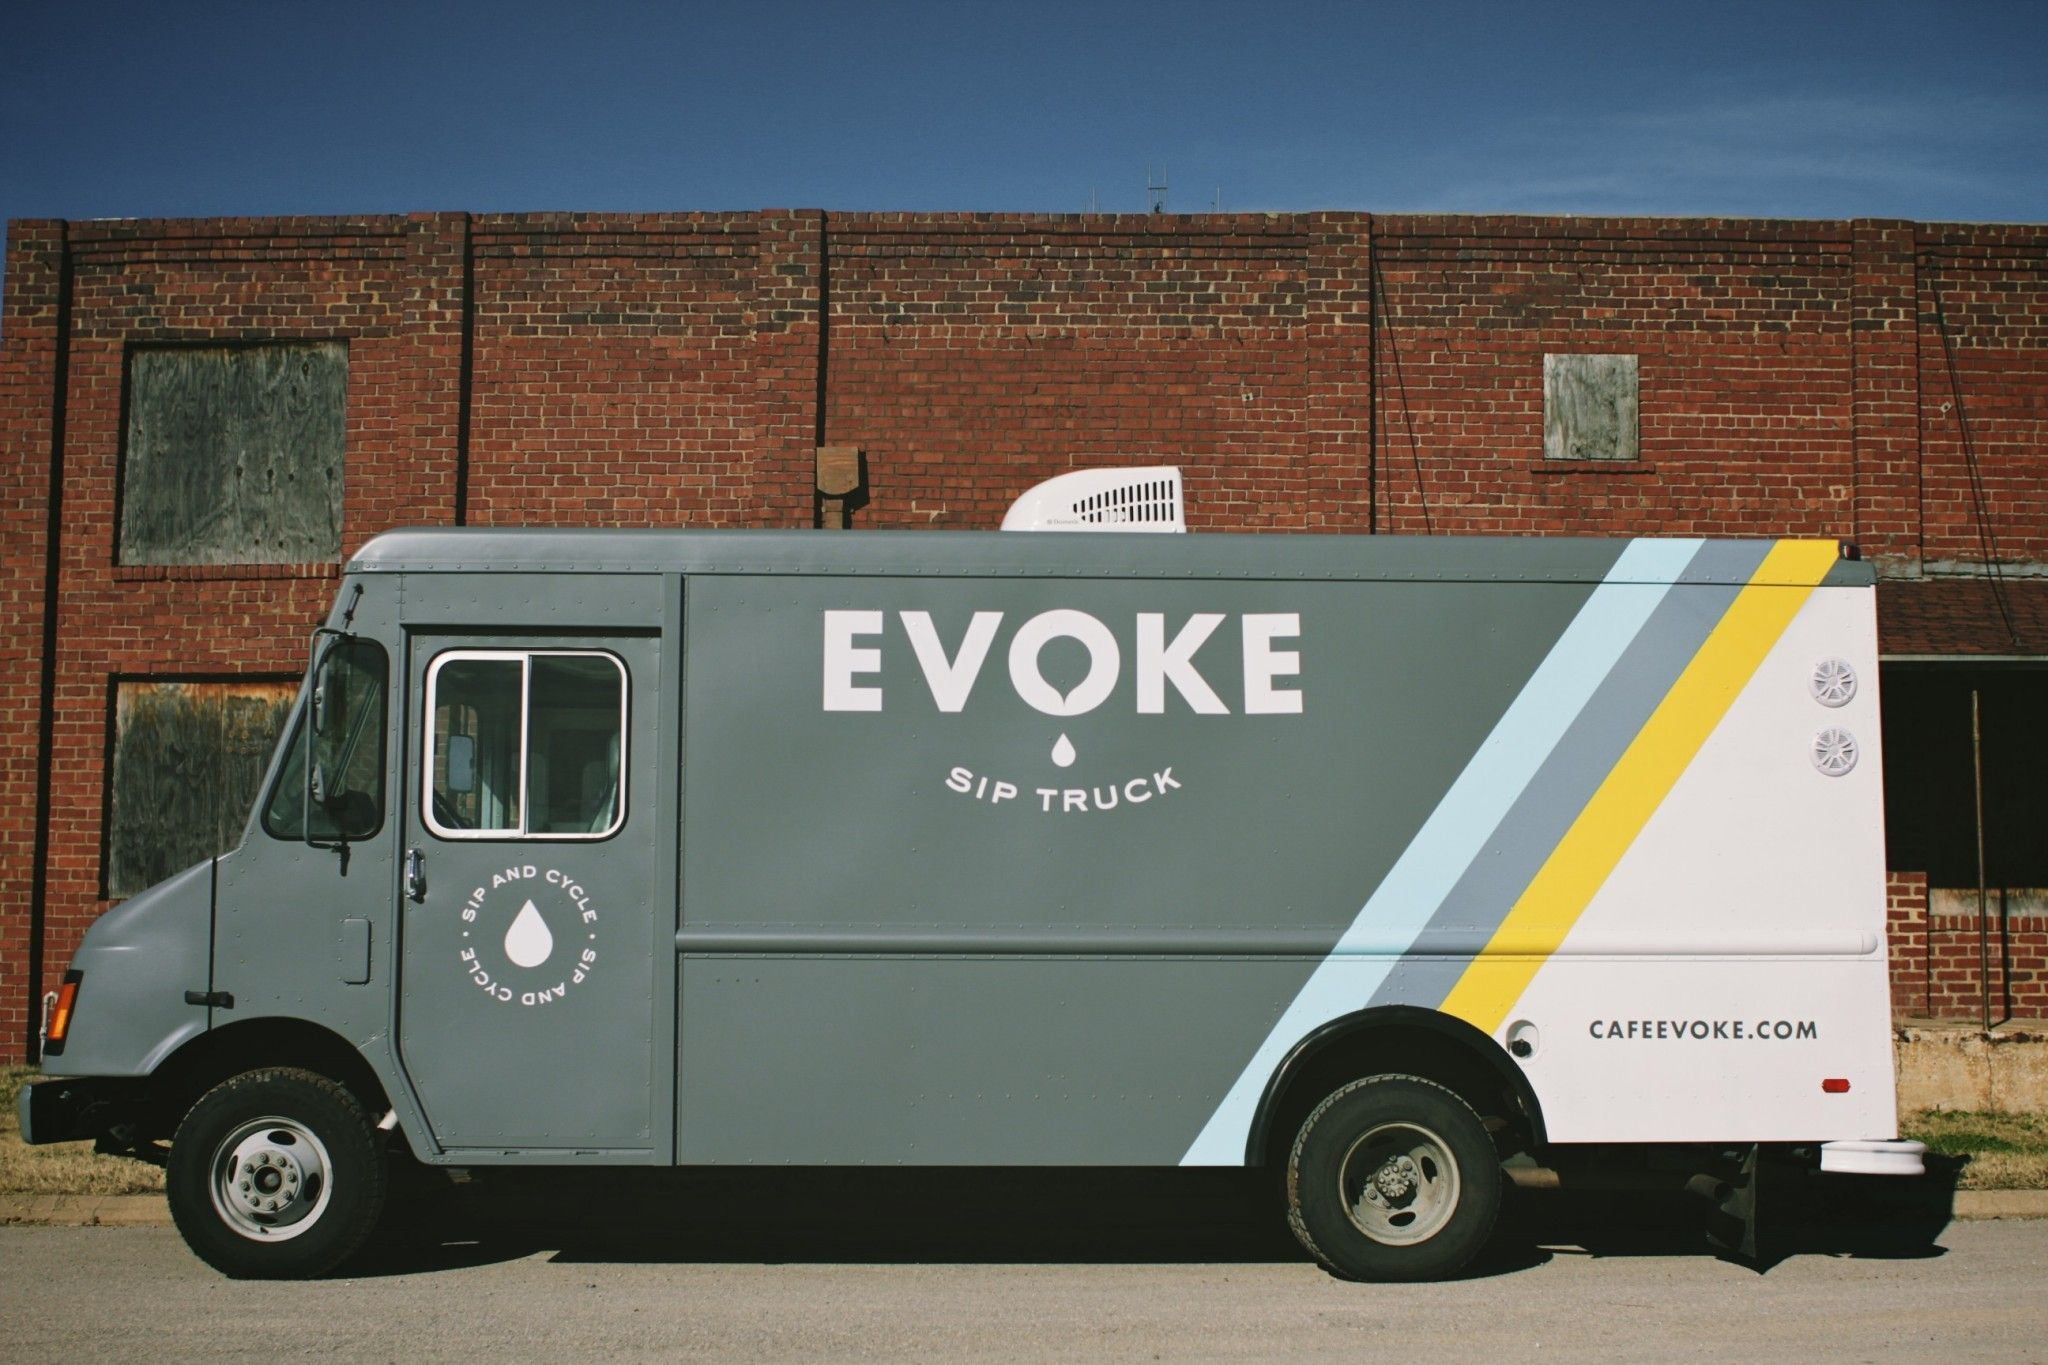 small business success story café evoke and citizens bank of